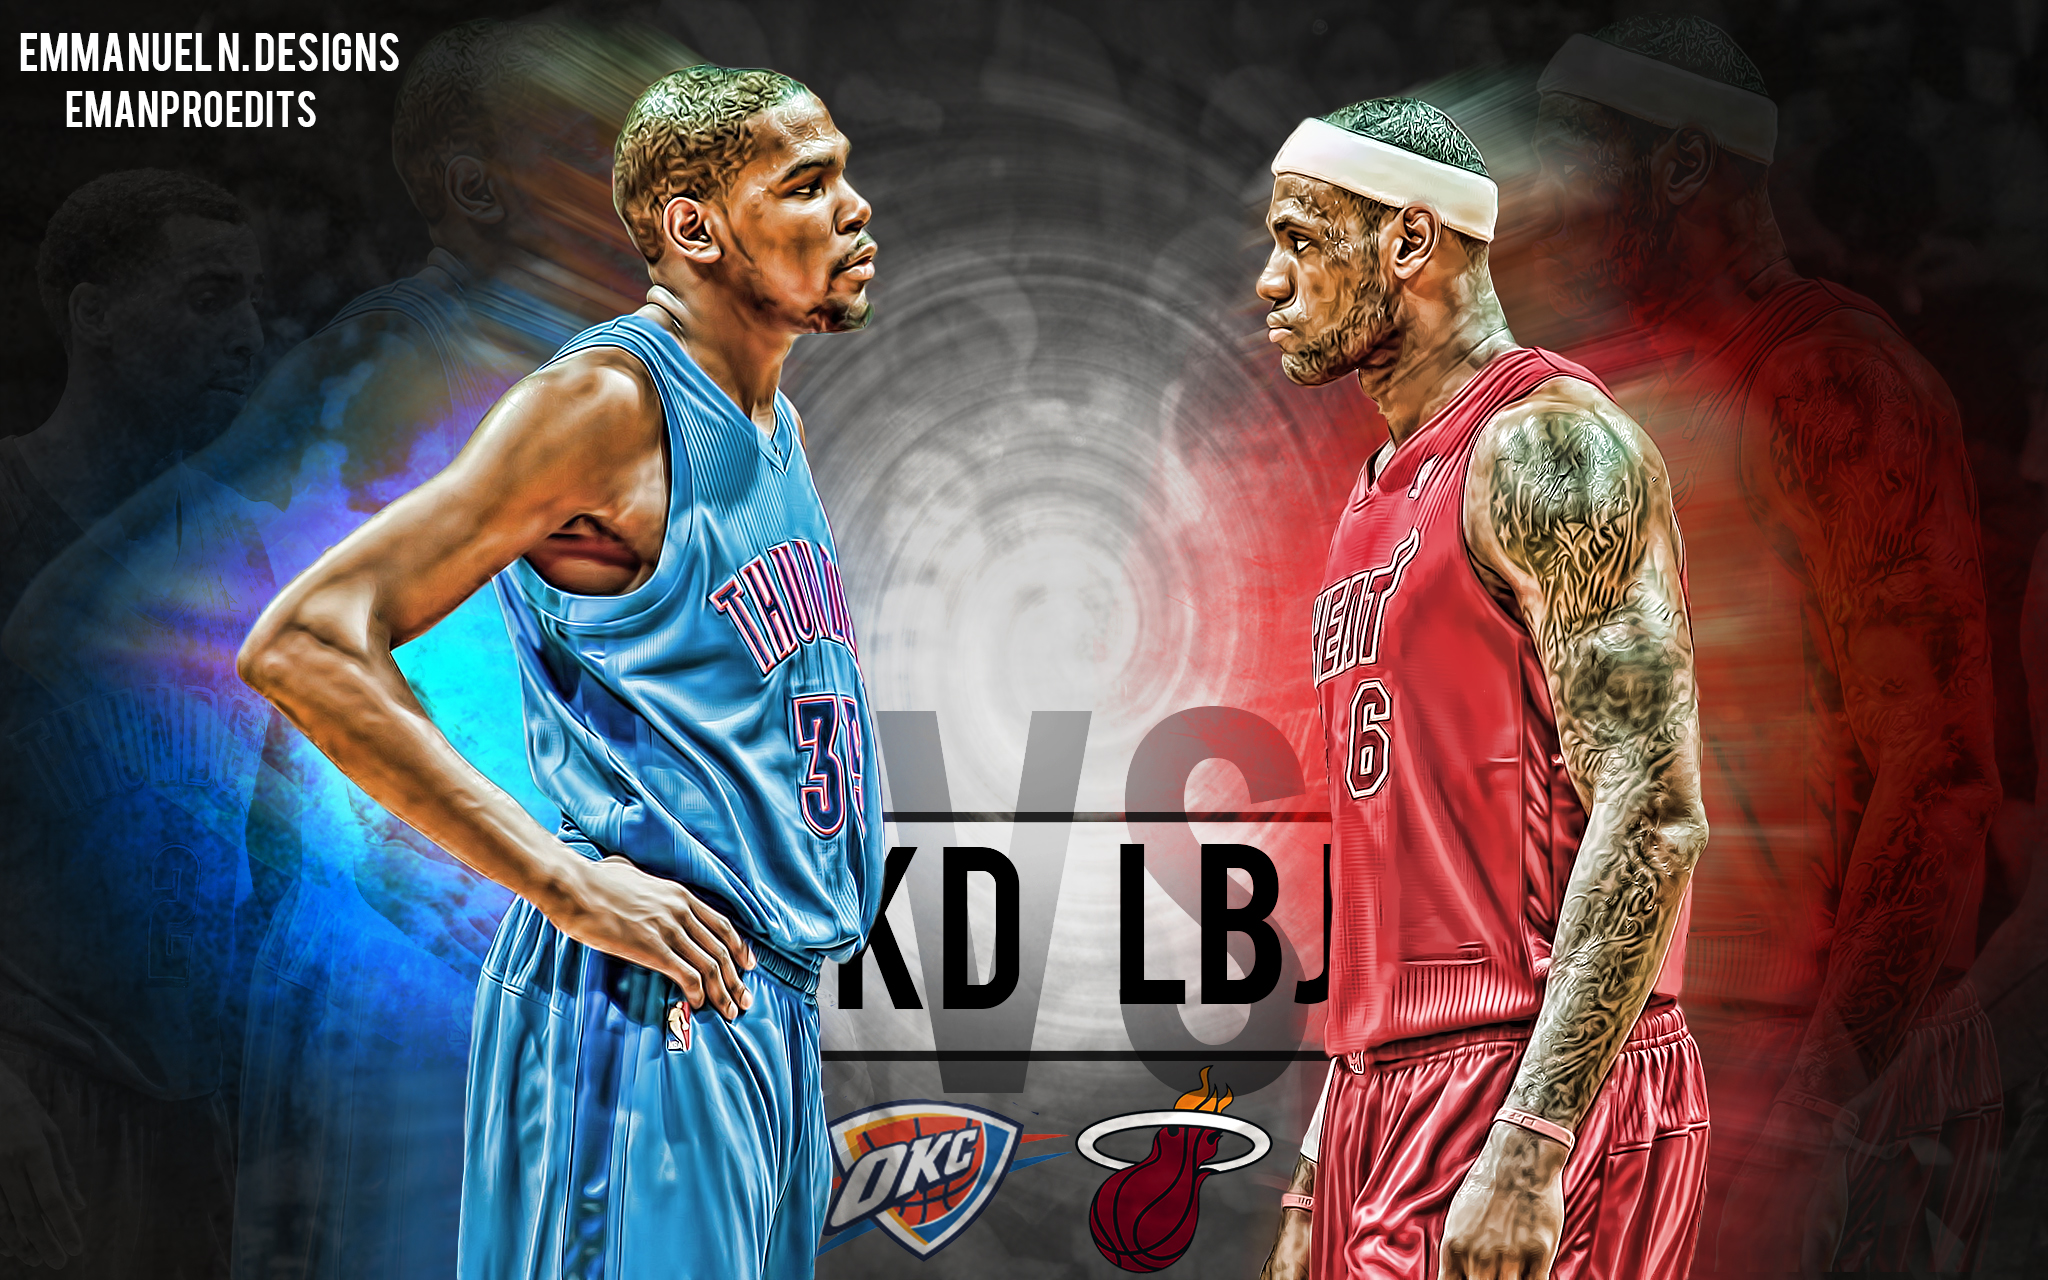 Kevin Durant vs Lebron James Wallpaper by emanproedits 2048x1280